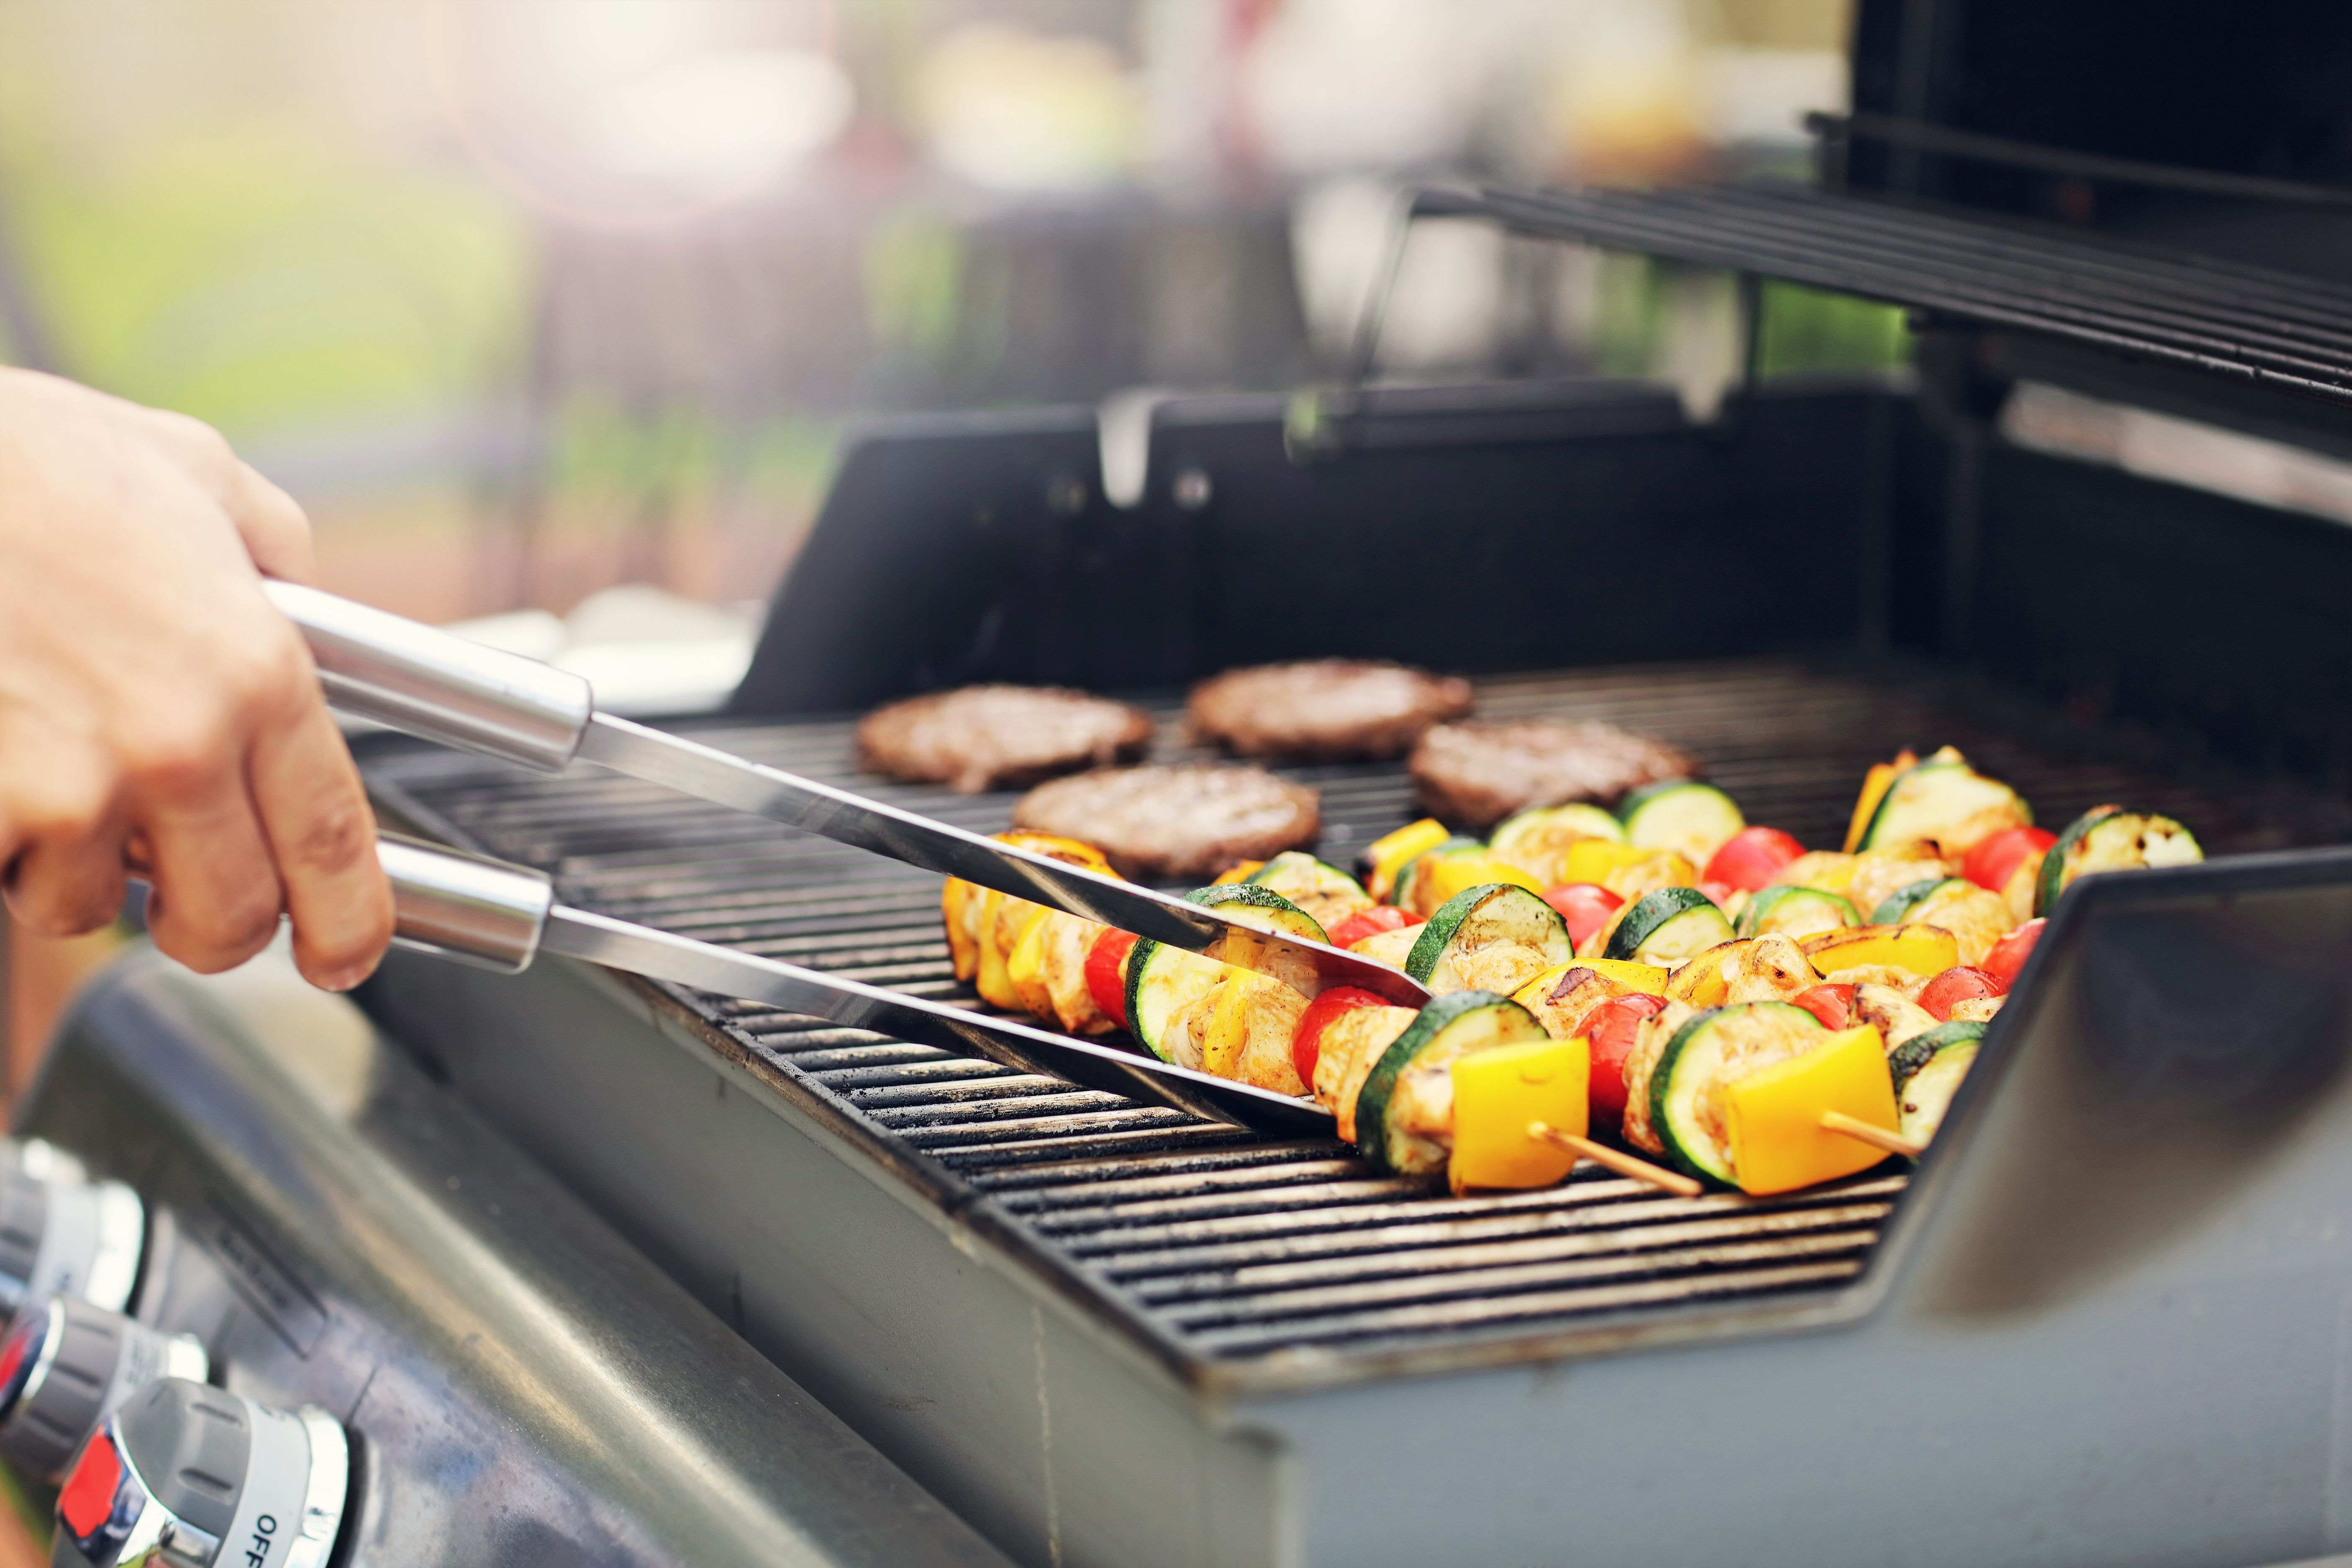 Barbecue or plancha grill: which is right for you?